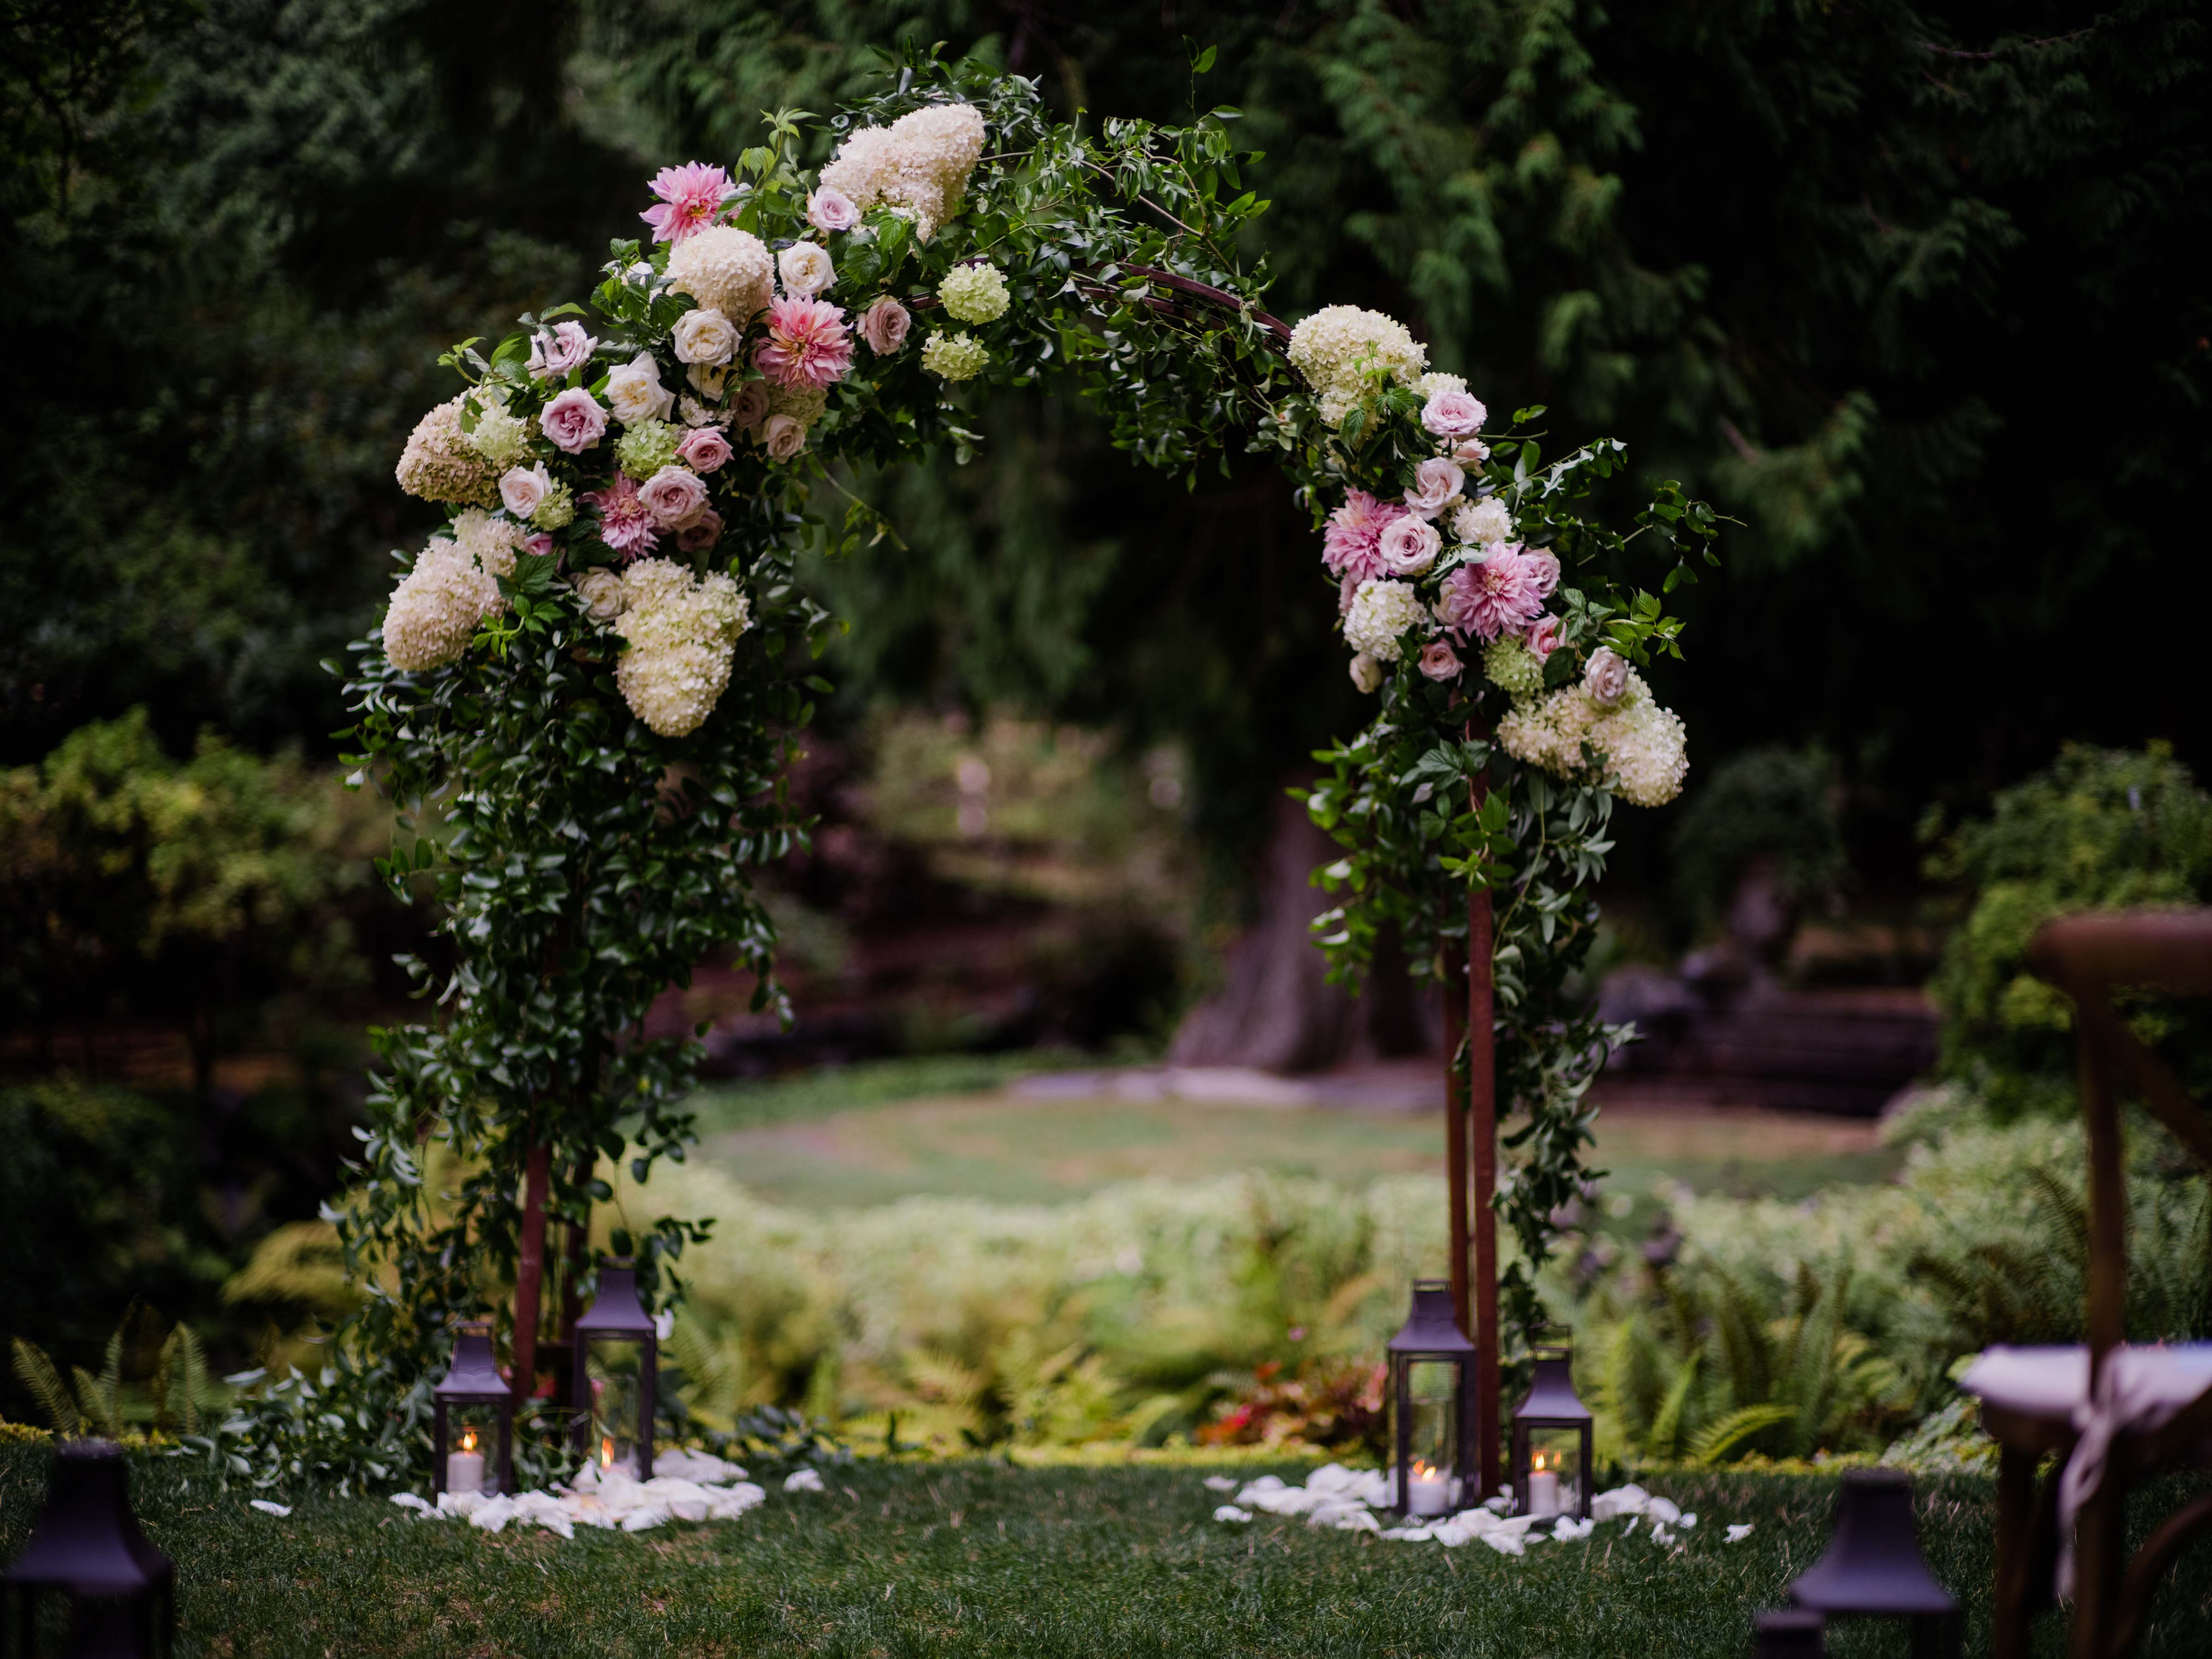 Wedding arch covered in greenery and blush flowers - A Luxe Chateau Lill Wedding designed by Flora Nova Design Seattle